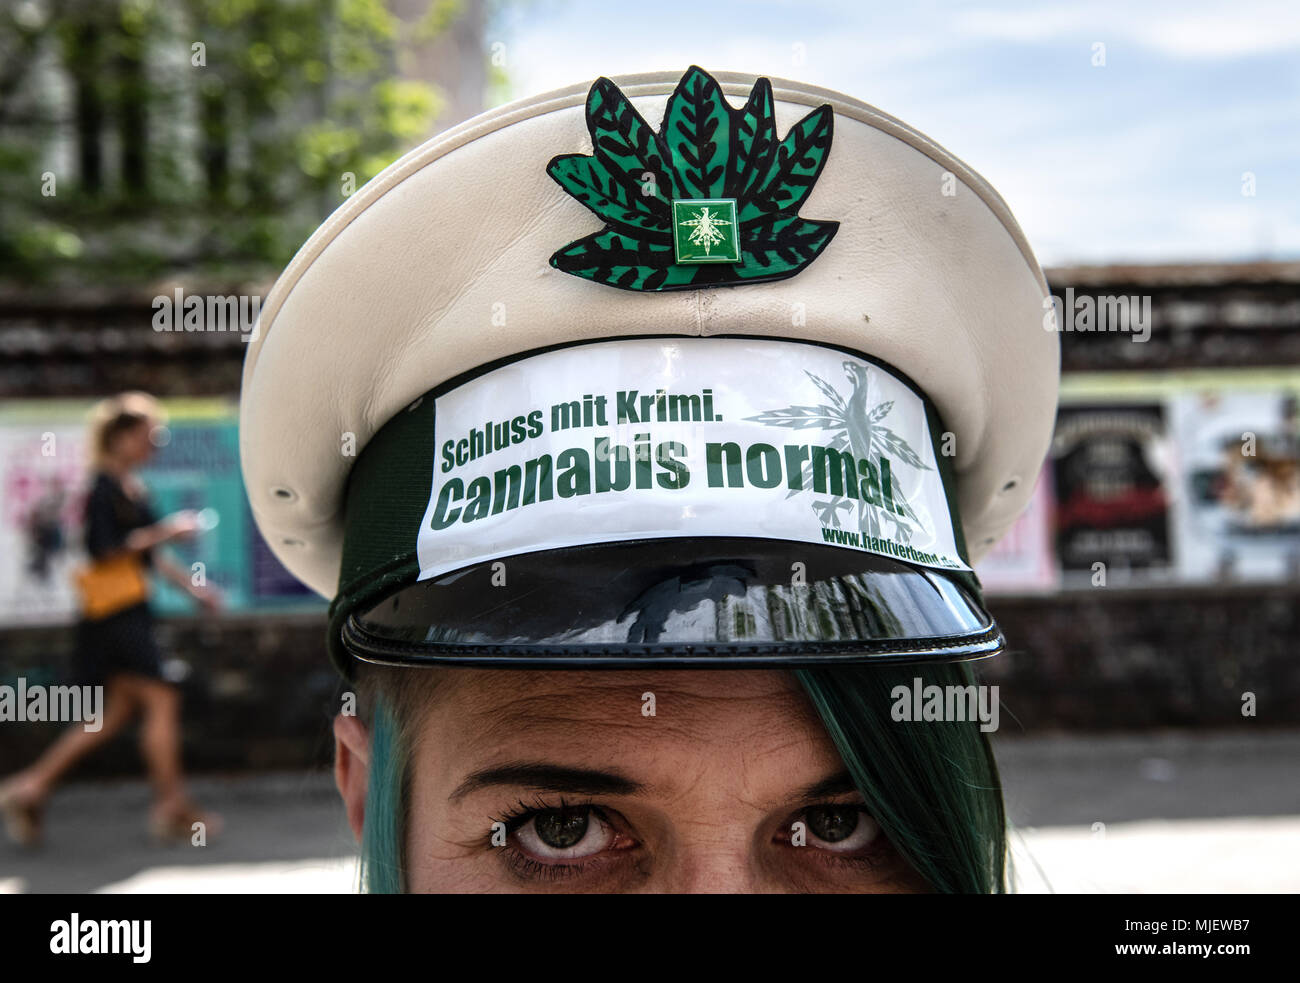 05 May 2018, Germany, Berlin: 'End crime: Cannabis is normal' reads a stylised police hat of a protestor demanding the legalisation of cannabis. Photo: Paul Zinken/dpa - Stock Image